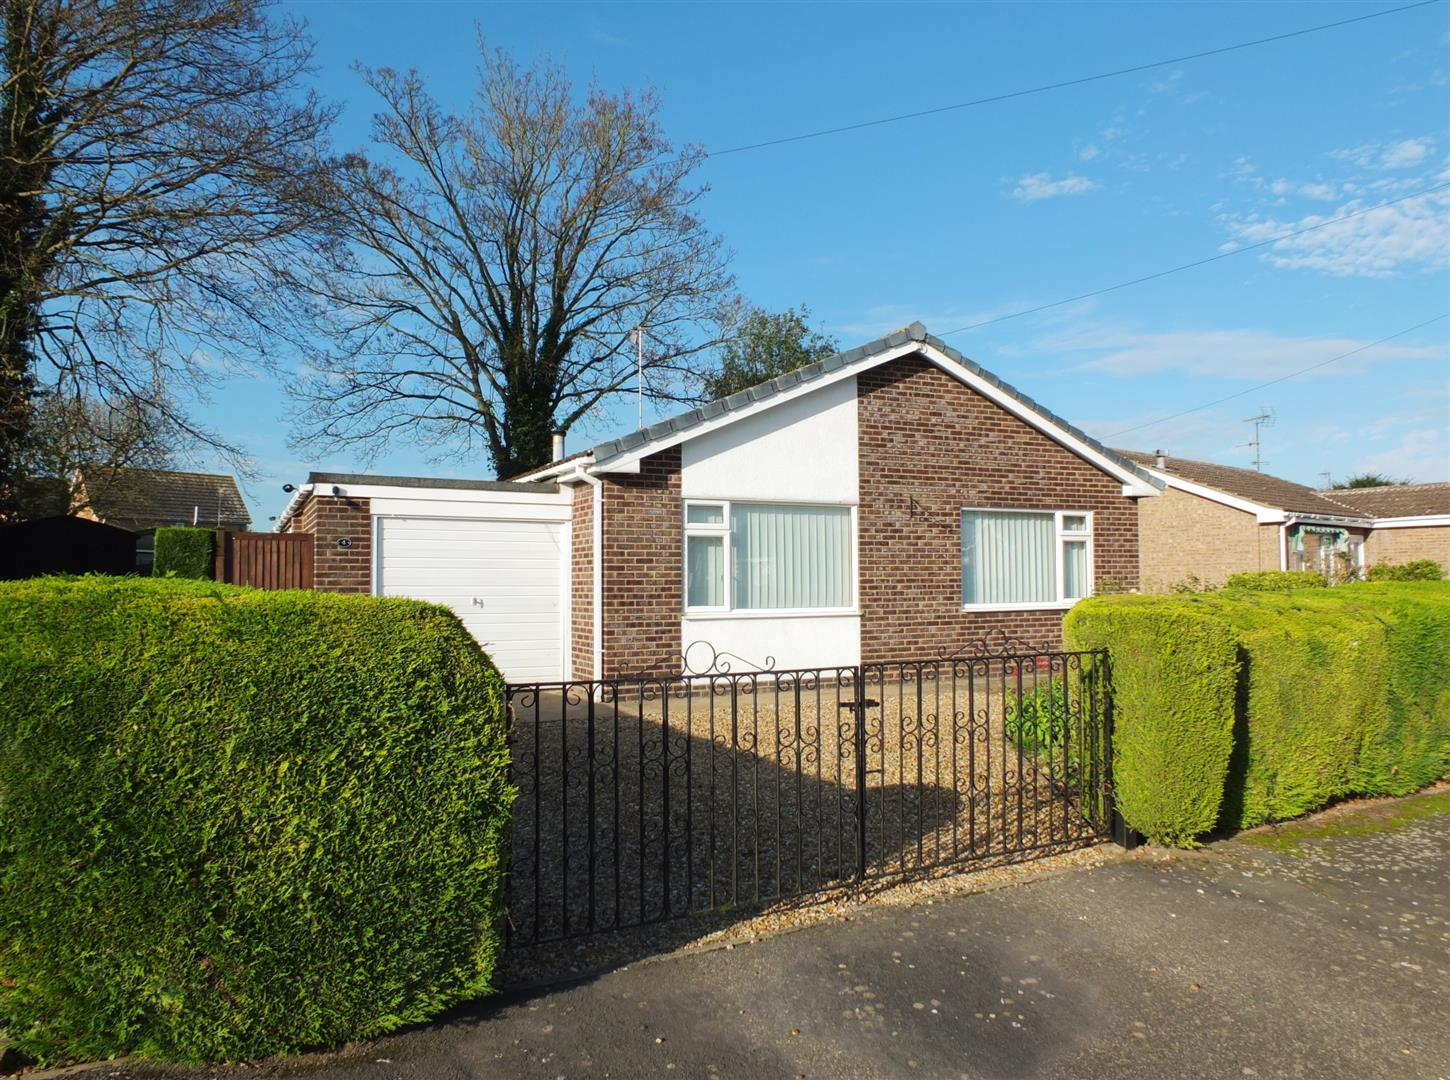 2 bed detached bungalow for sale in Long Sutton Spalding, PE12 9DY, PE12